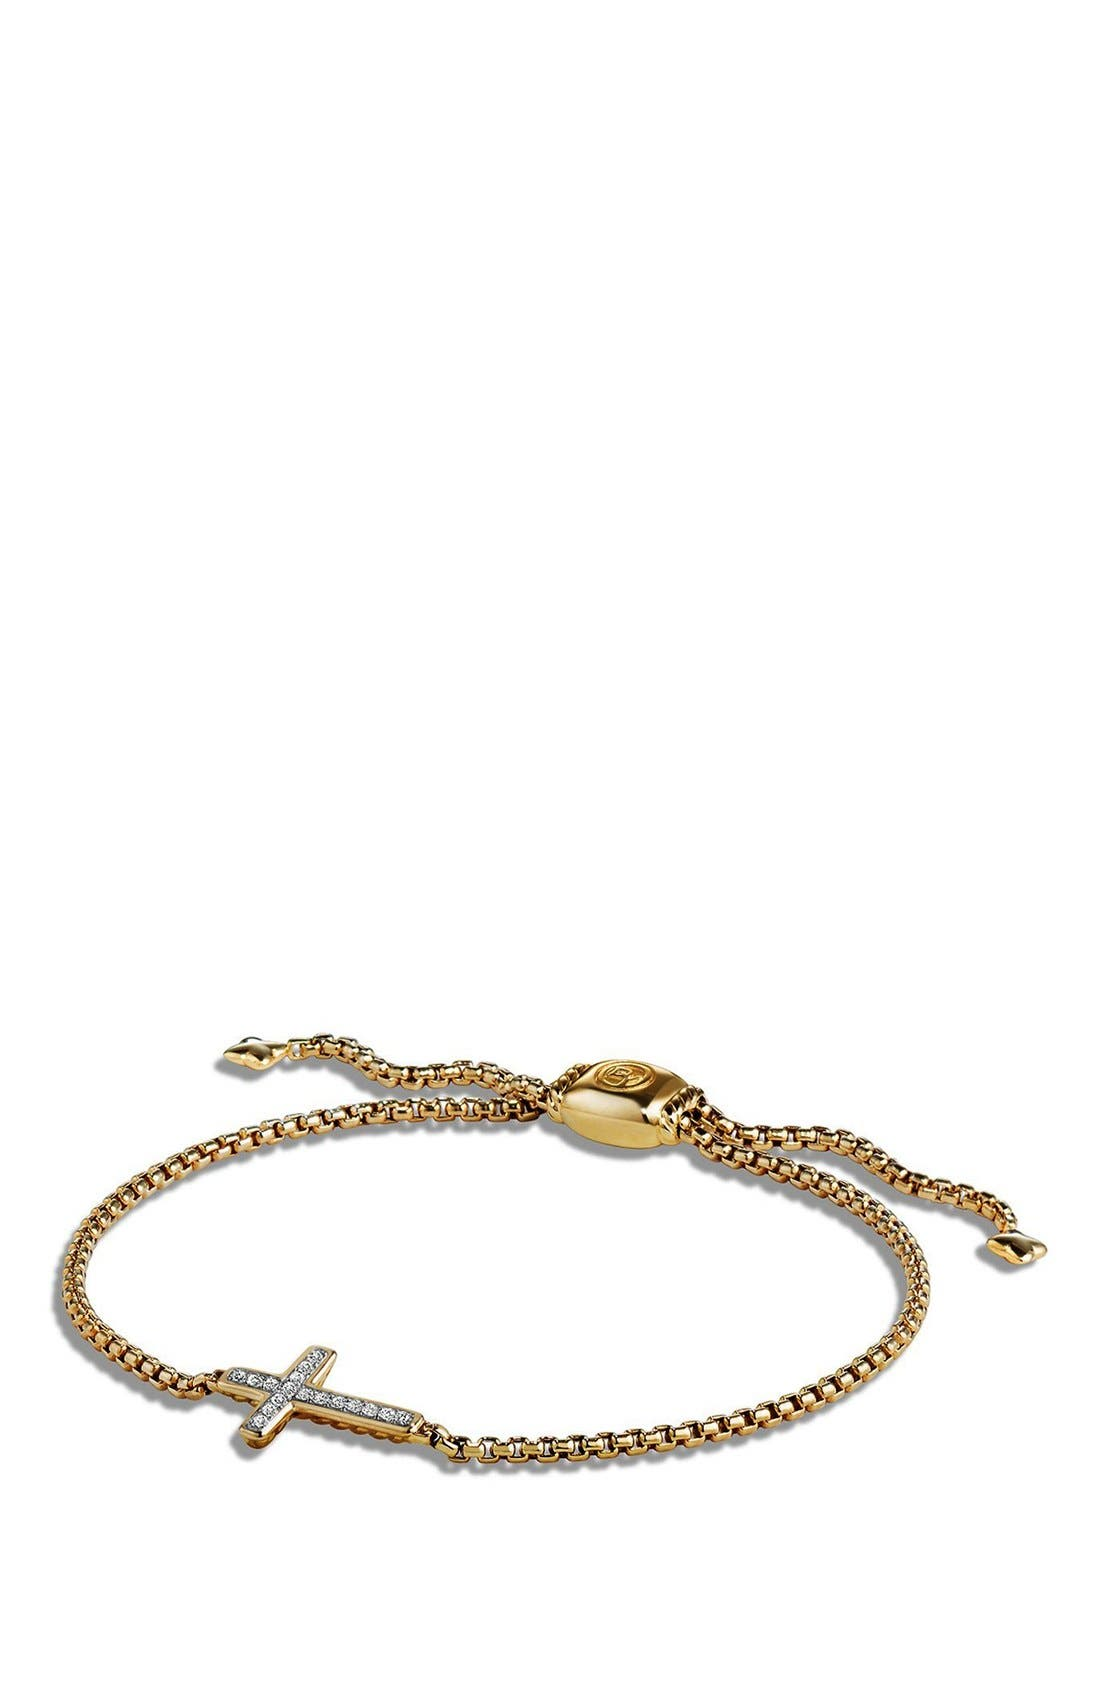 DAVID YURMAN Petite Pavé Cross Bracelet with Diamonds in 18K Gold